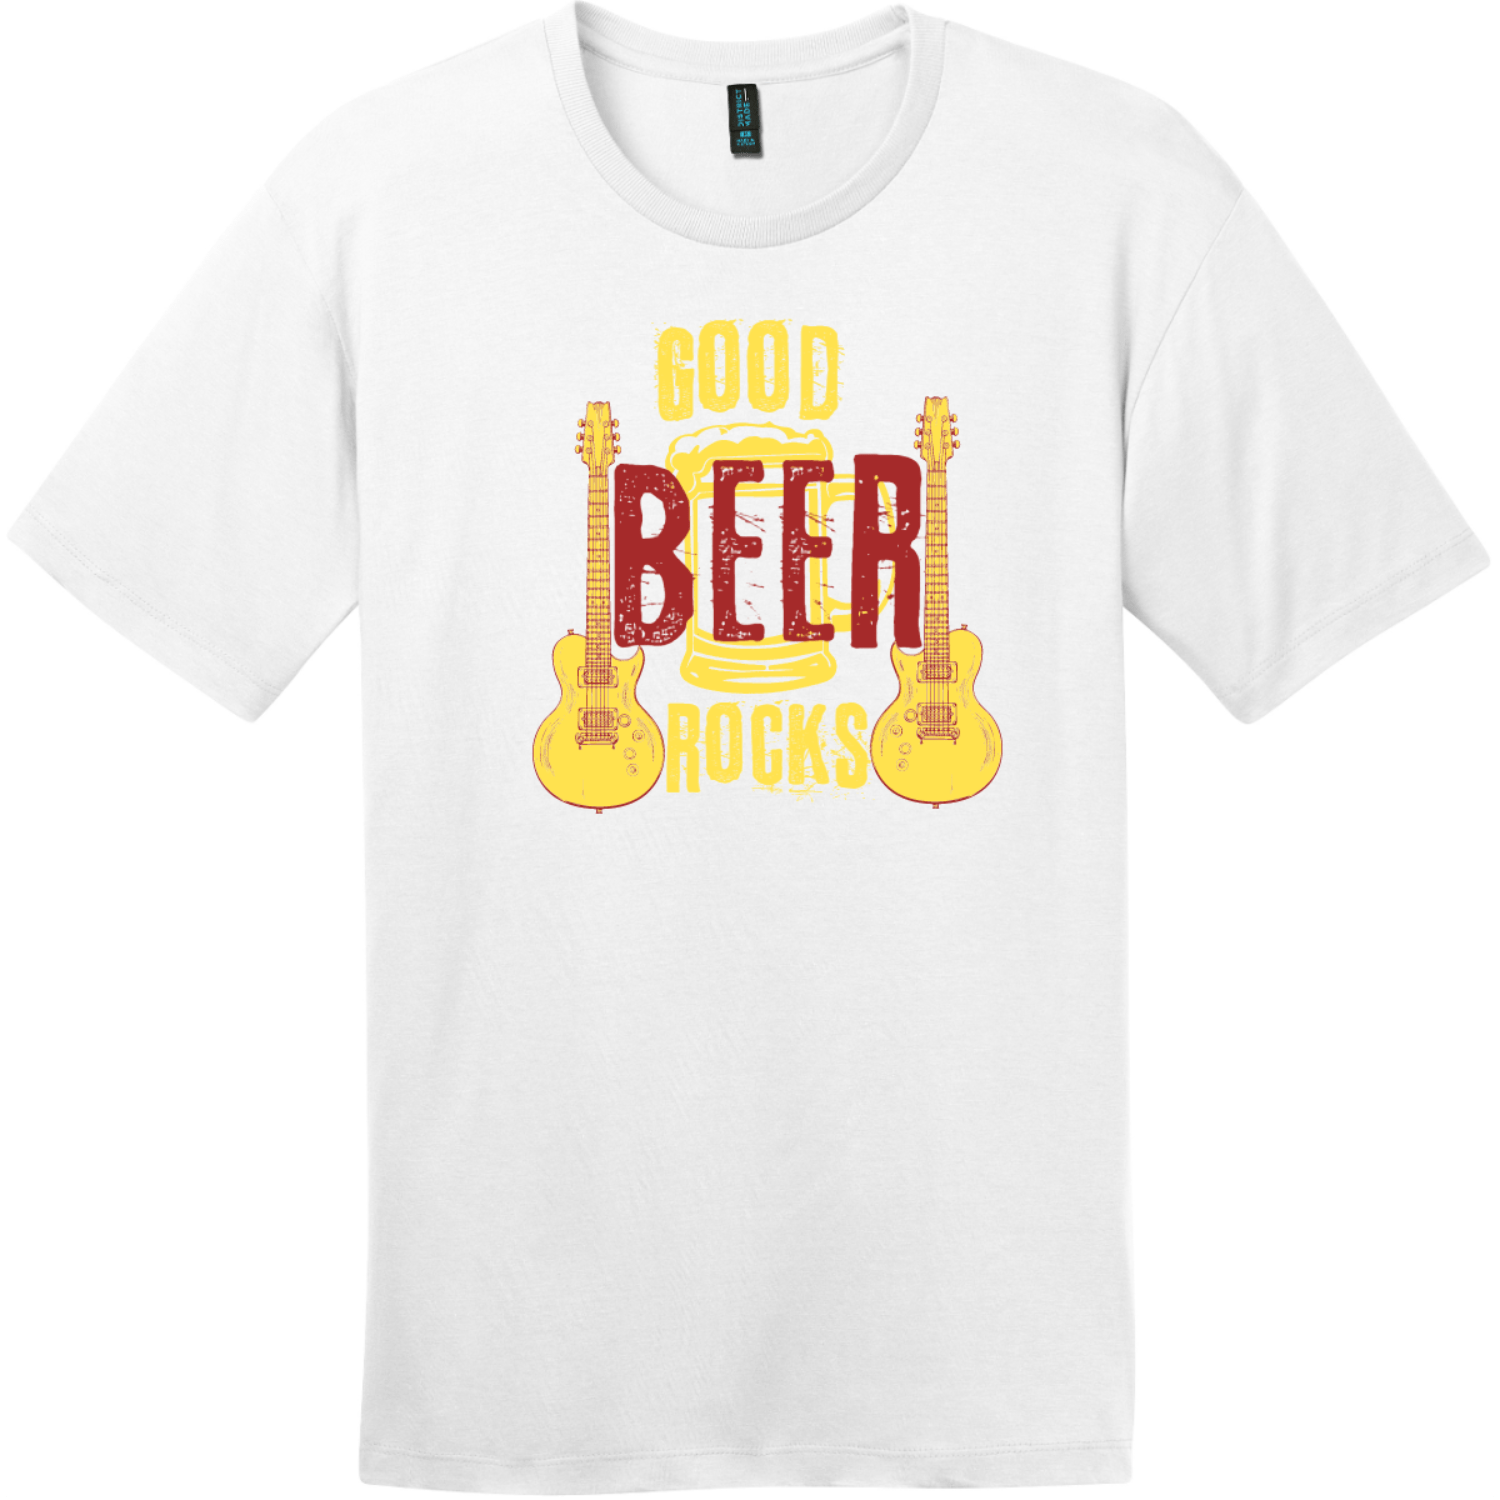 Good Beer Rocks Guitar T-Shirt Bright White District Perfect Weight Tee DT104